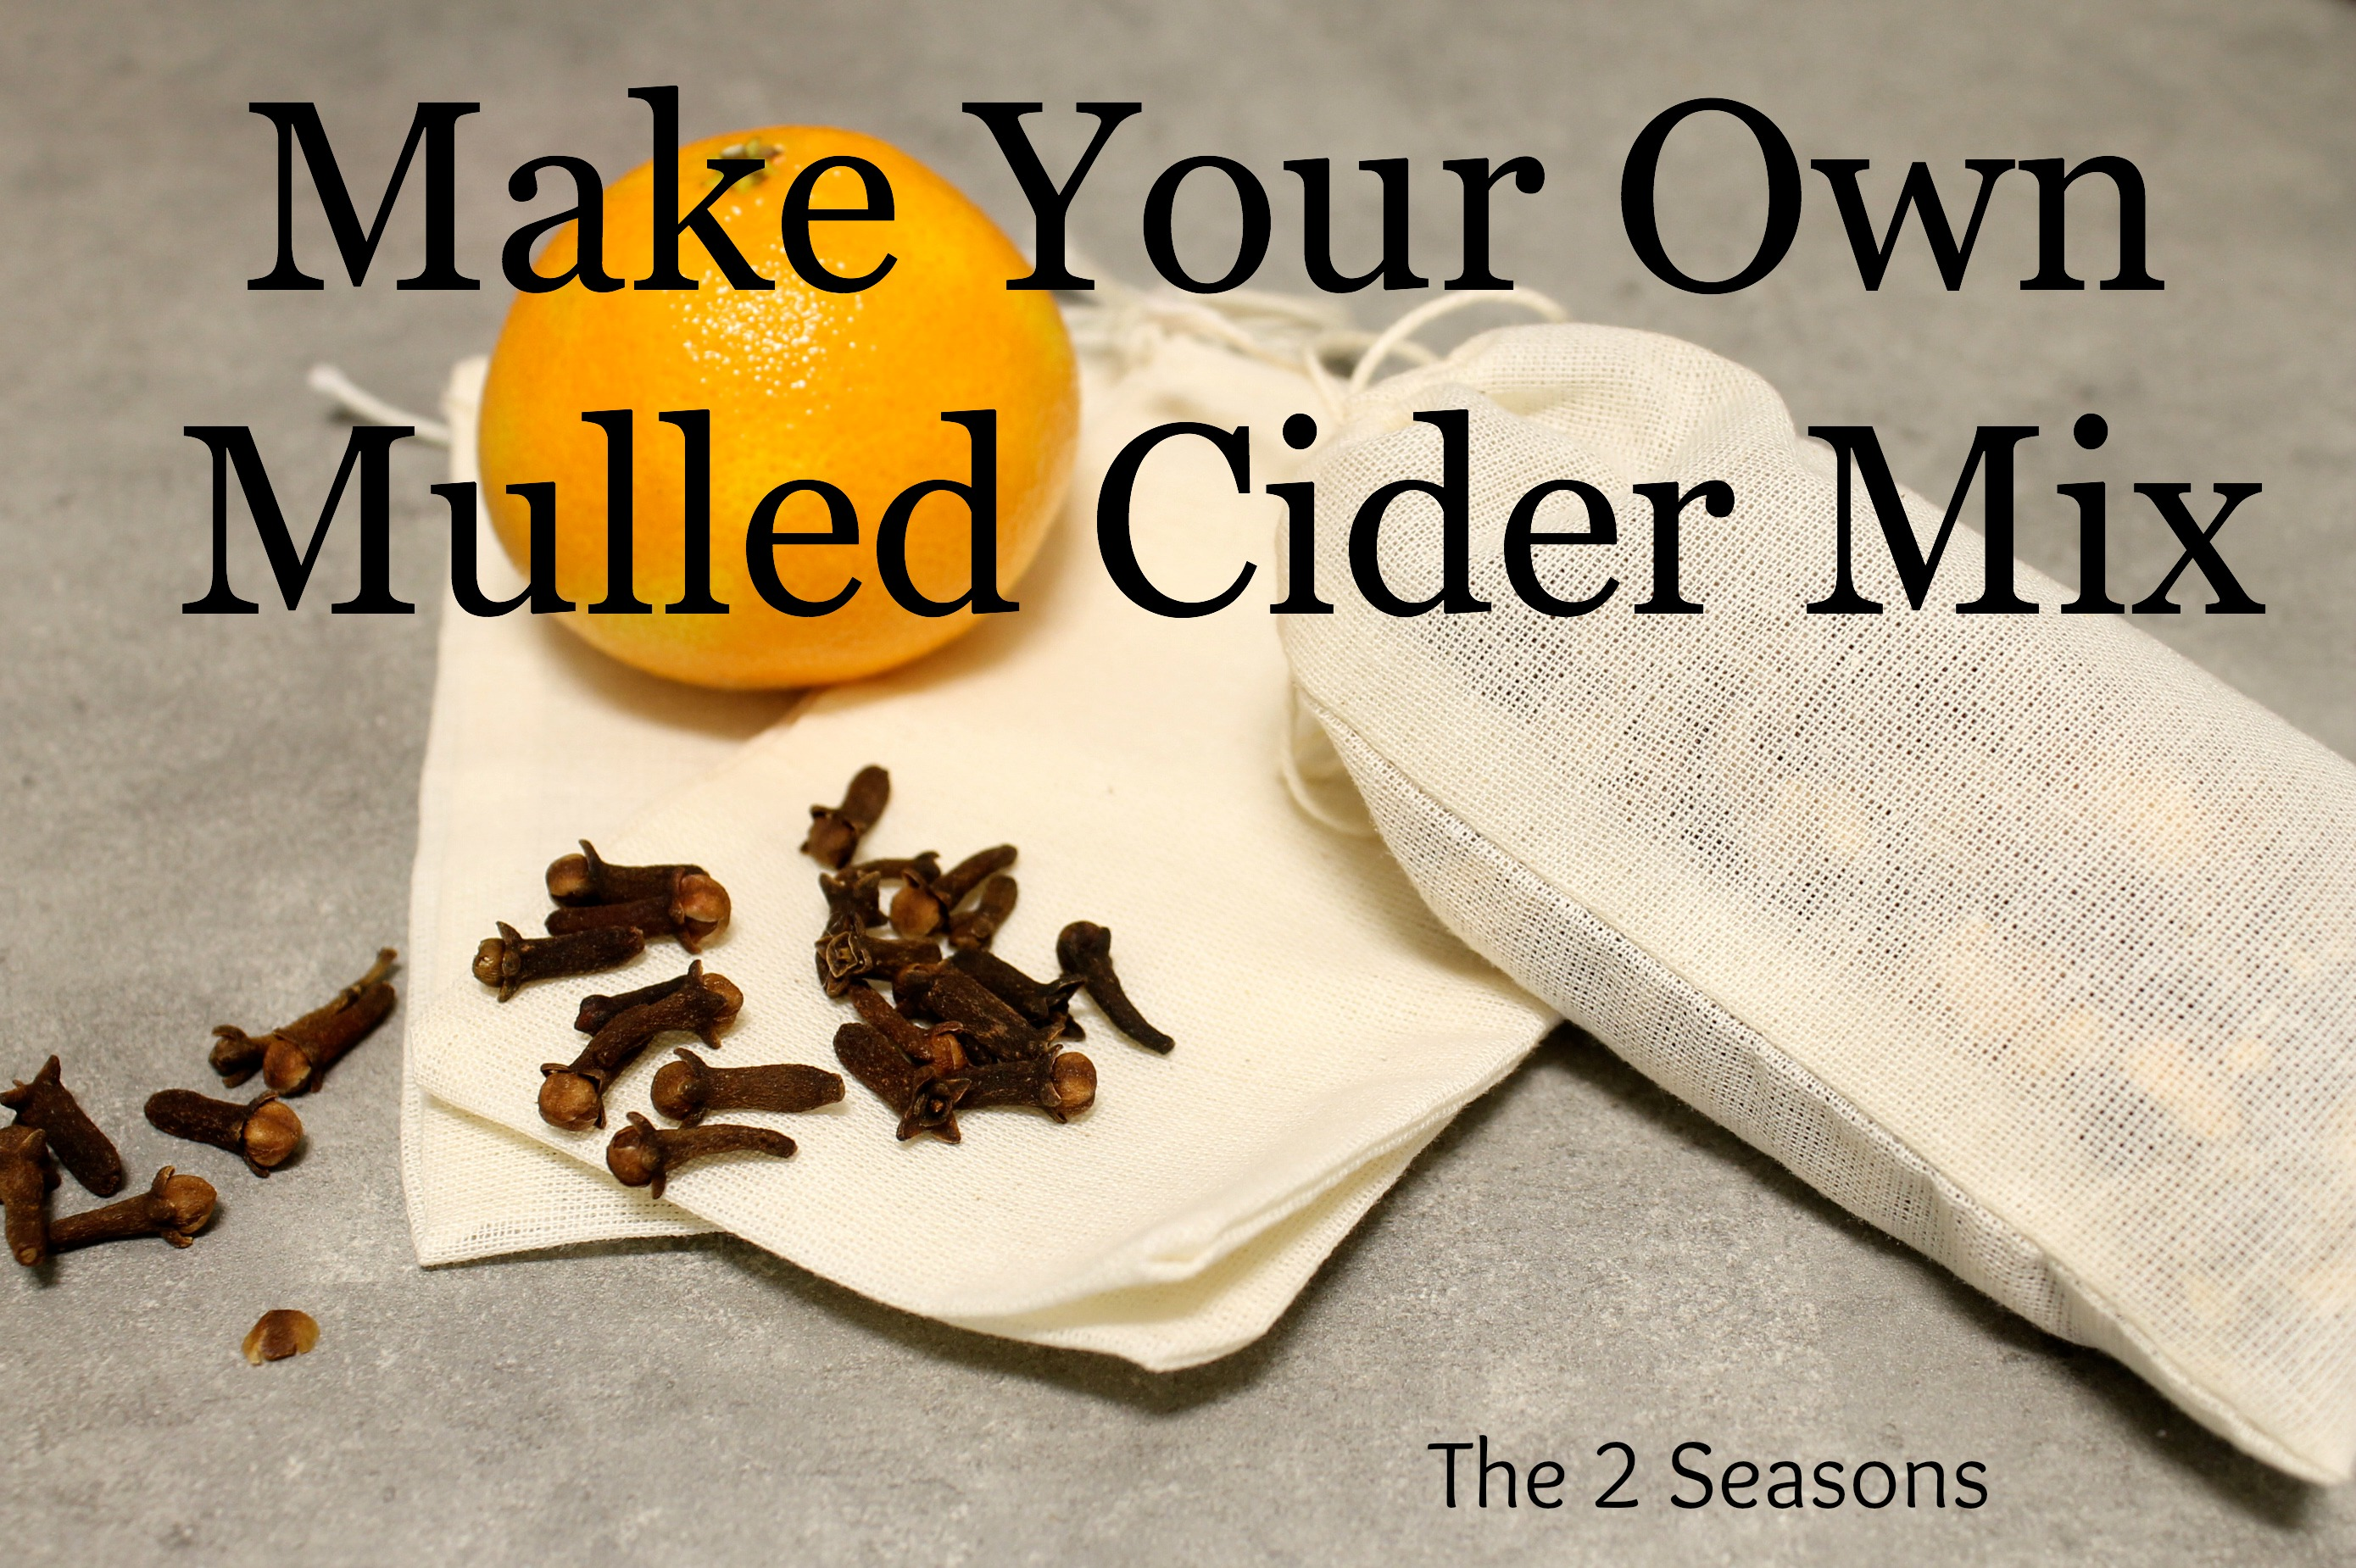 Mulled Cider - We Installed Our New Oven!!!